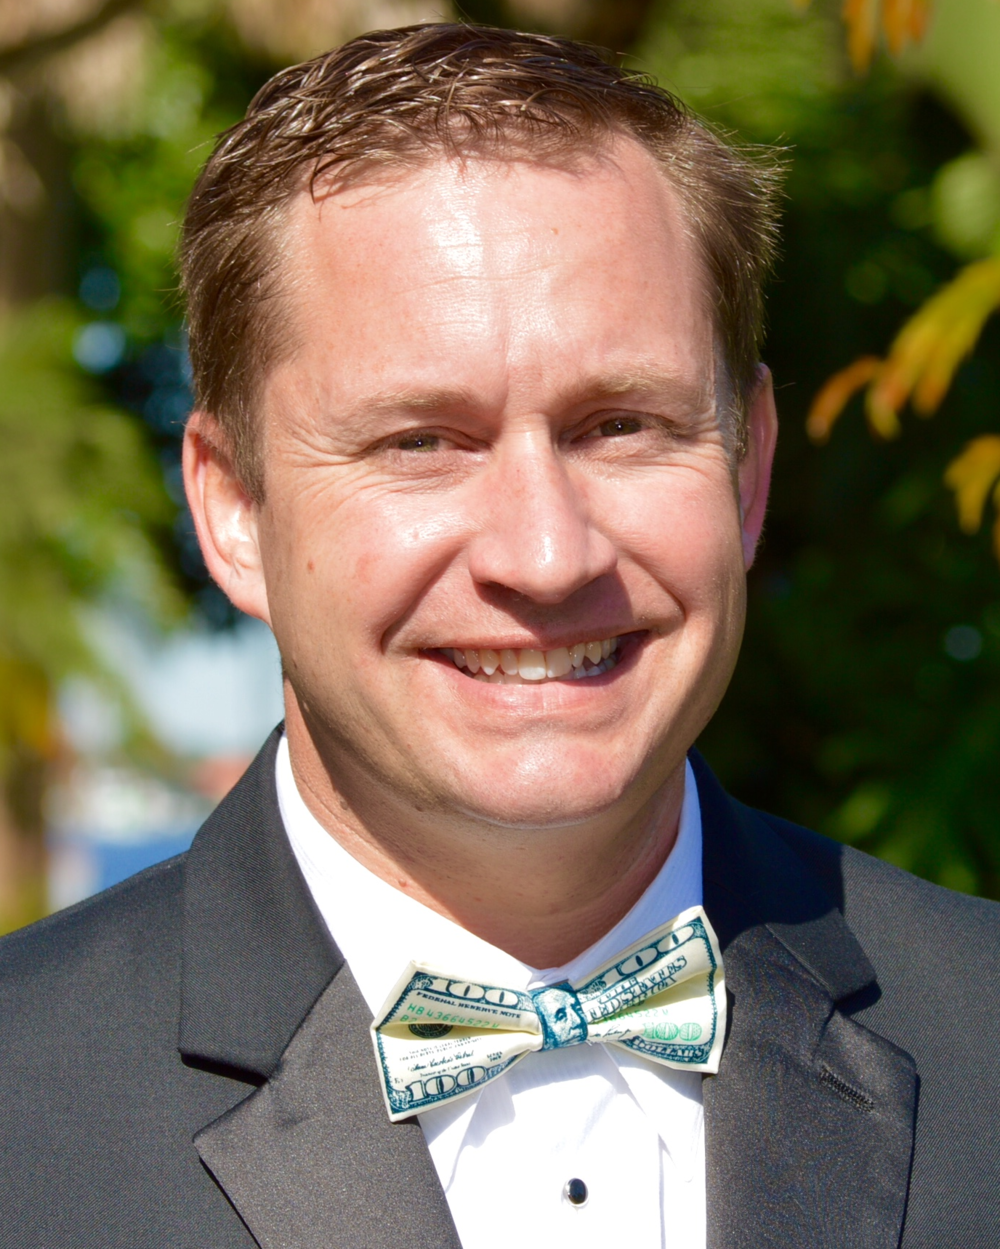 3D Imaging Group Founder and Drew Pittman Realty Broker Drew Pittman